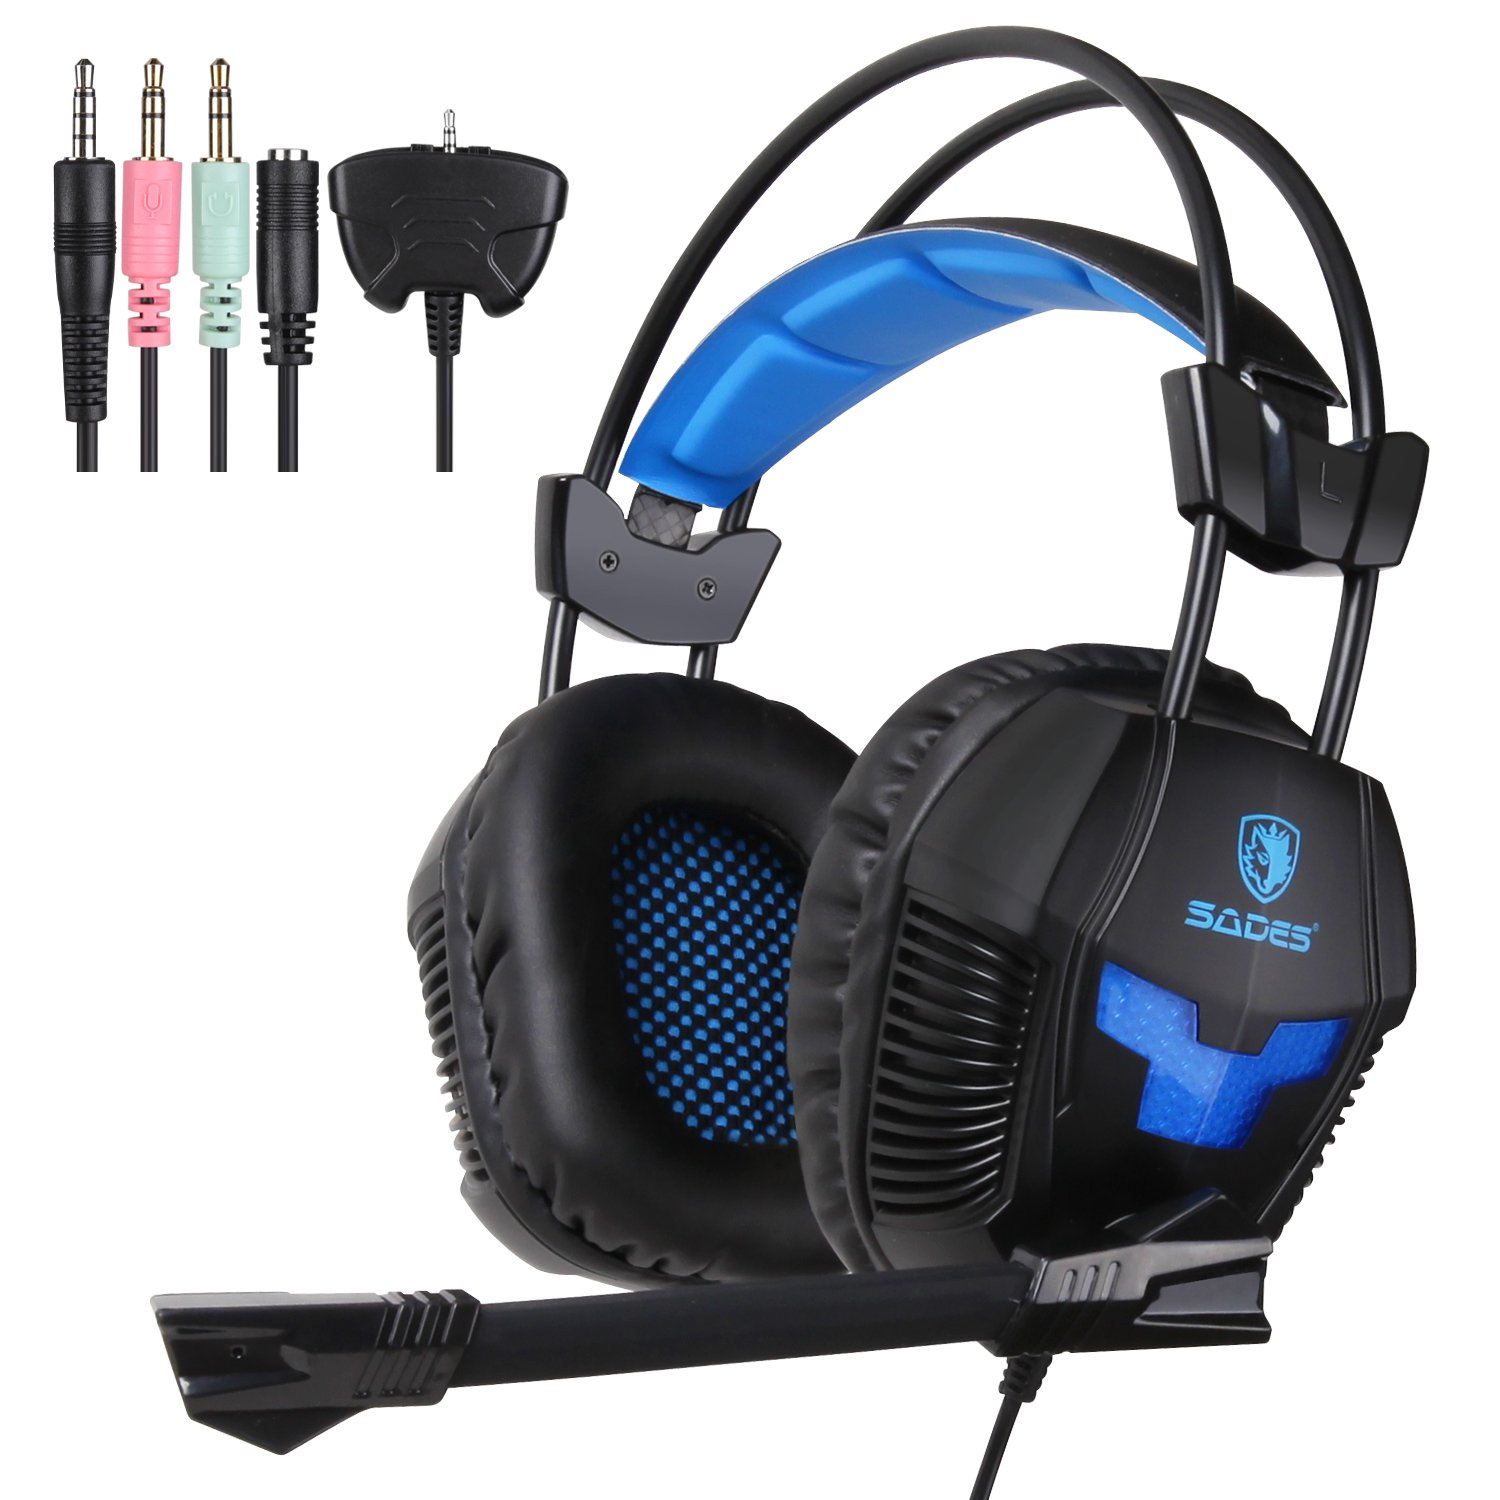 Sades SA921 Gaming Headset for PS4 Xbox360 Xbox one PC iPhone Smart Phone Laptop iPad Mobile phones, Multi Function Pro Game Headphones with Mic (Black)